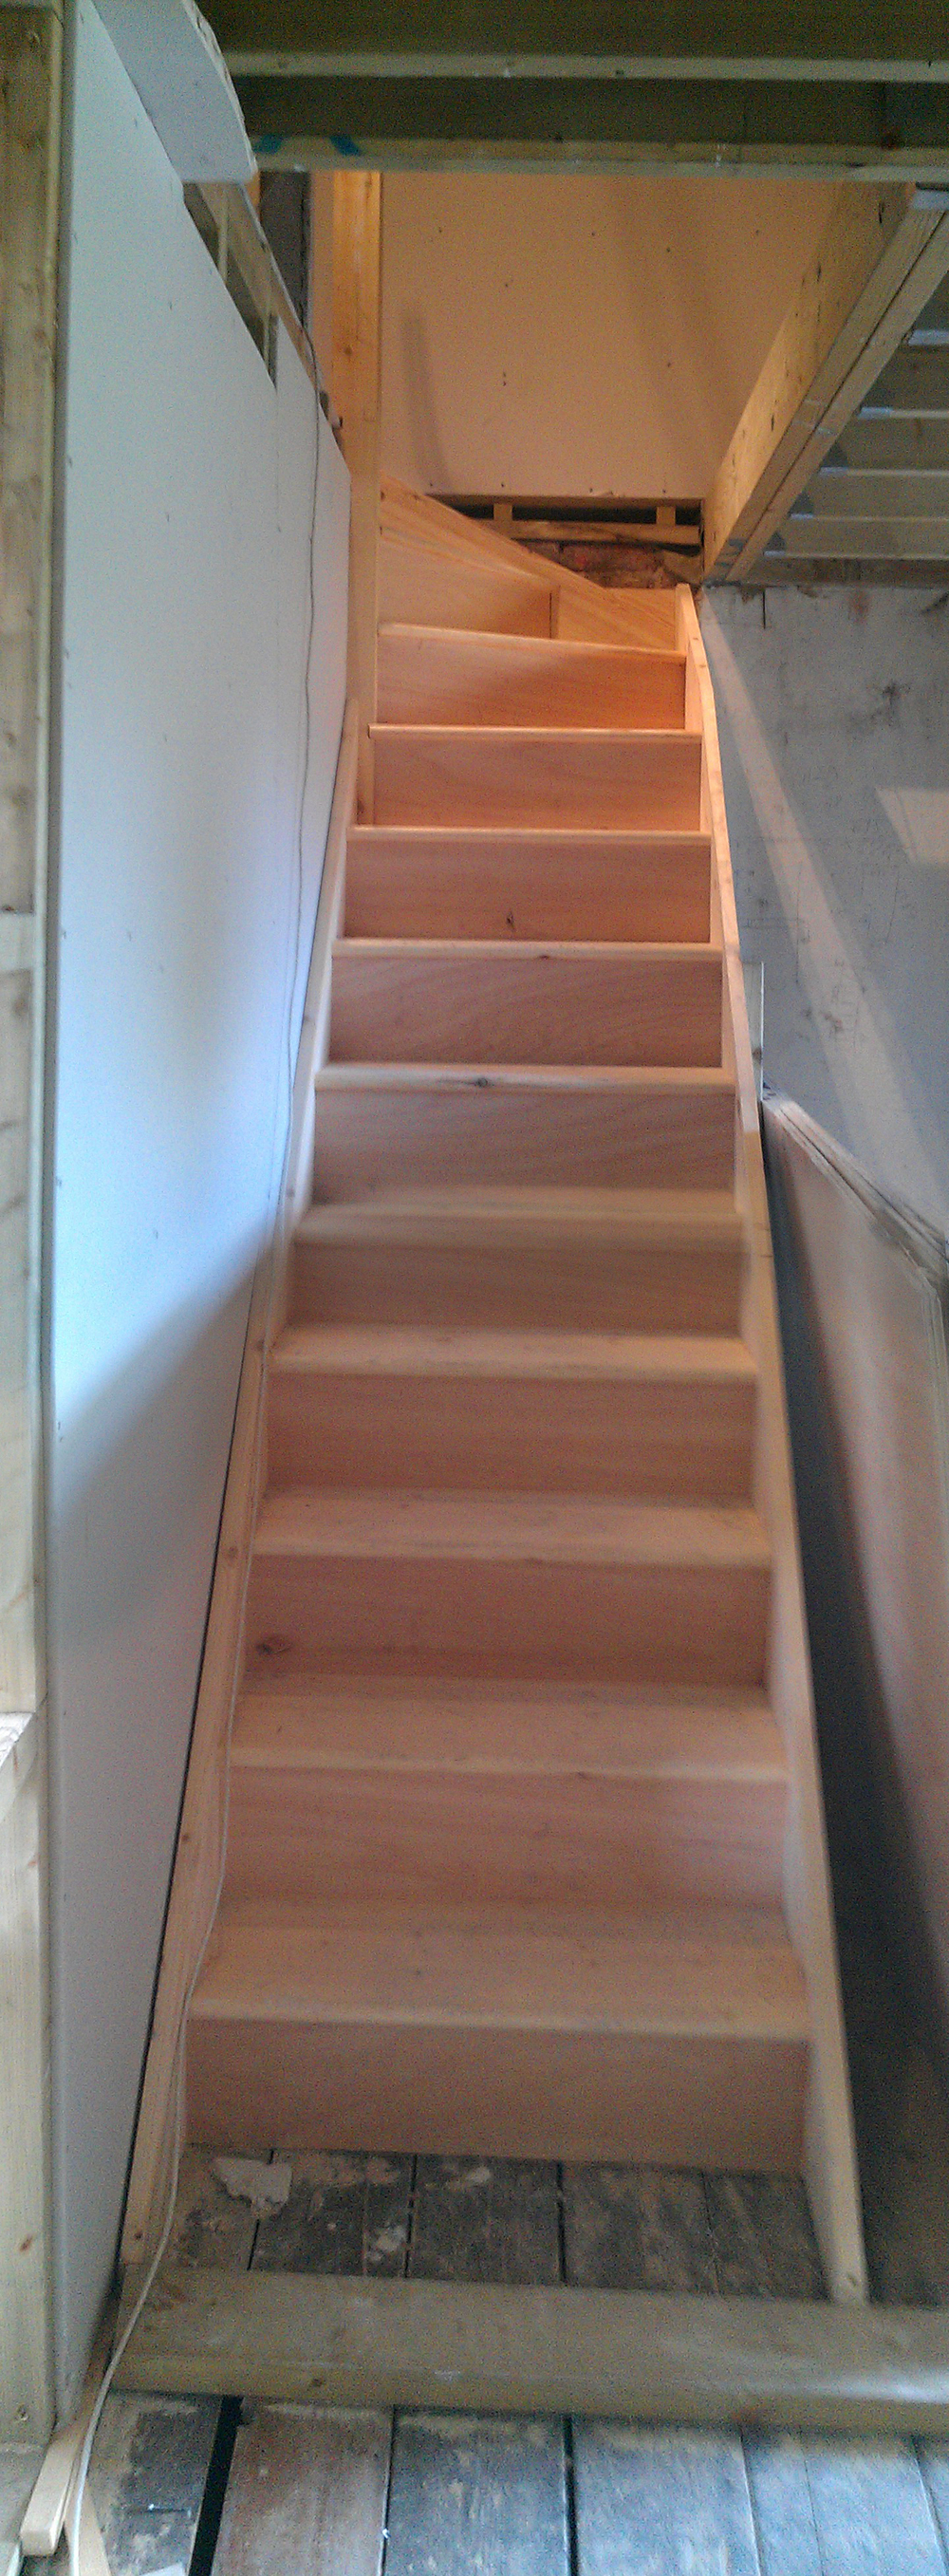 Very happy to see our tight little loft stair going in, looks spacious enough in the flesh!